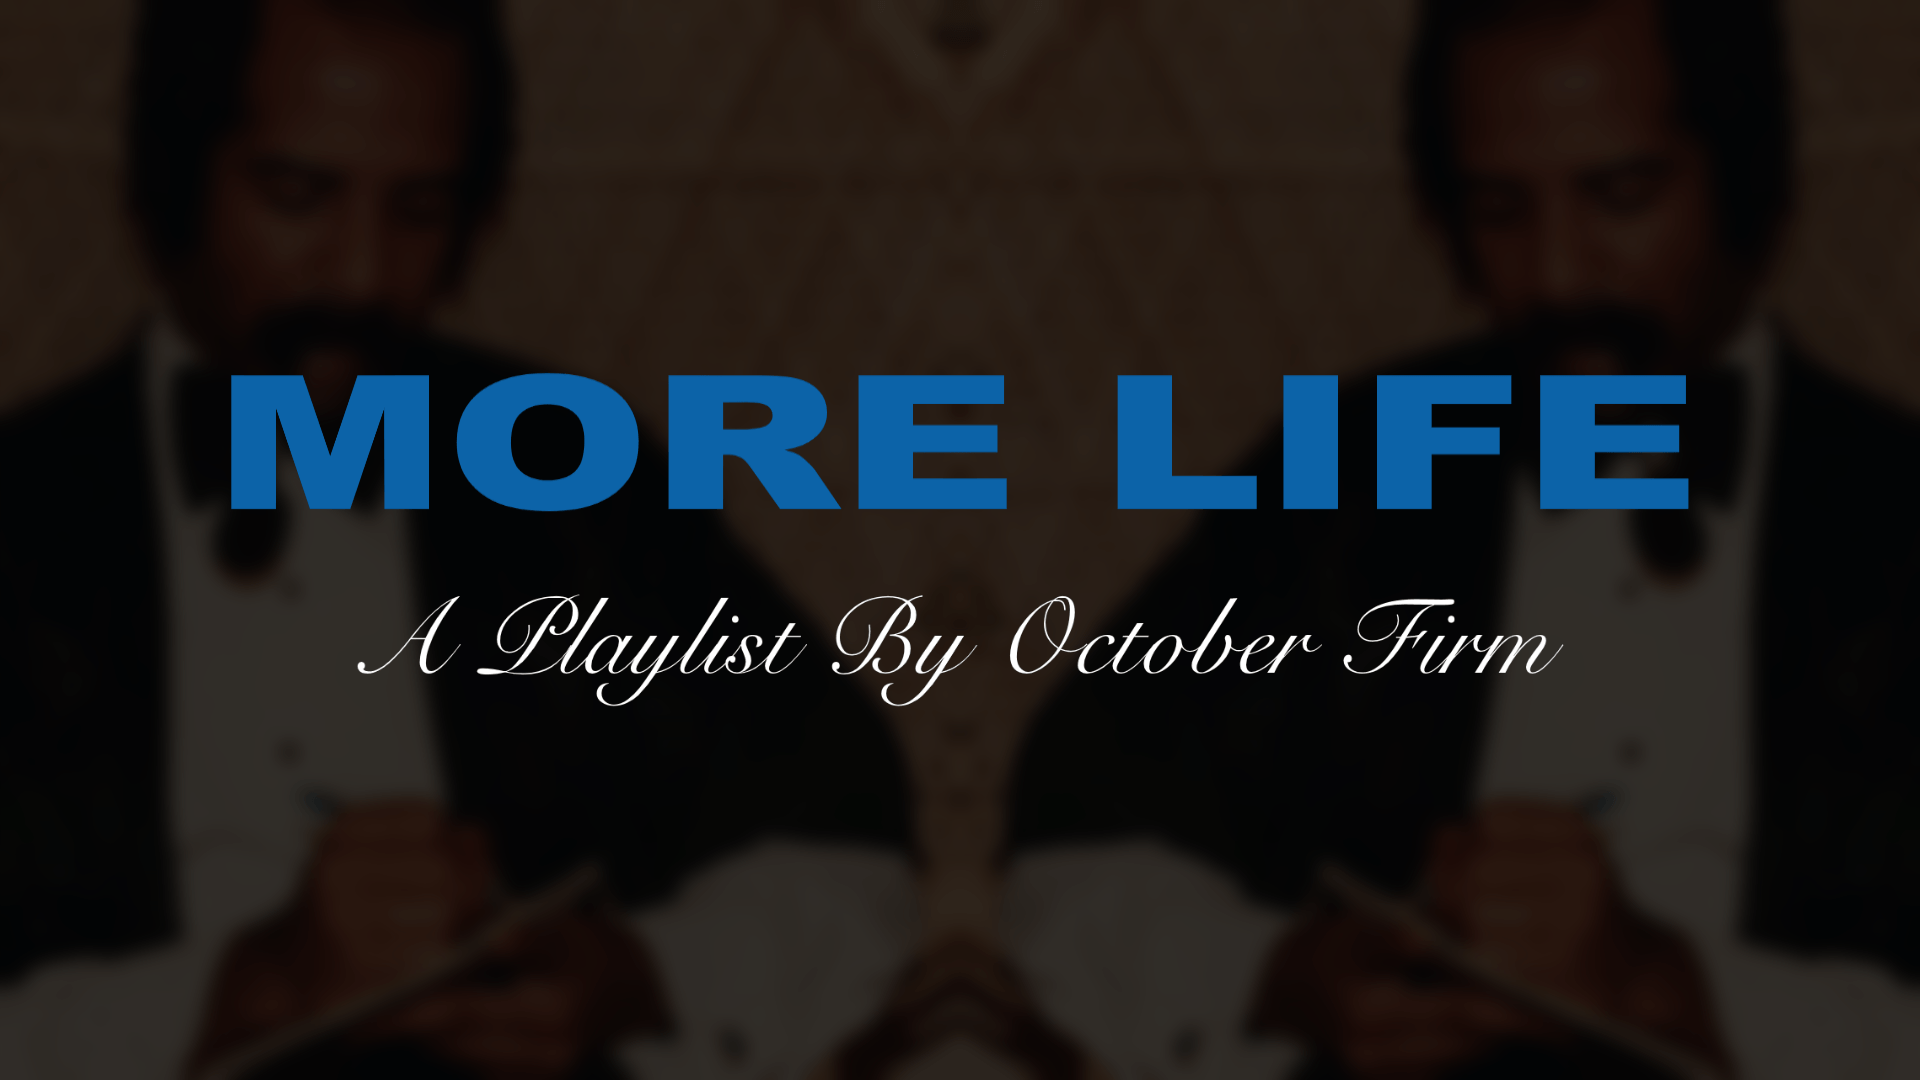 1920x1080 PIC] MORE LIFE 1920x1080 Wallpaper : Drizzy